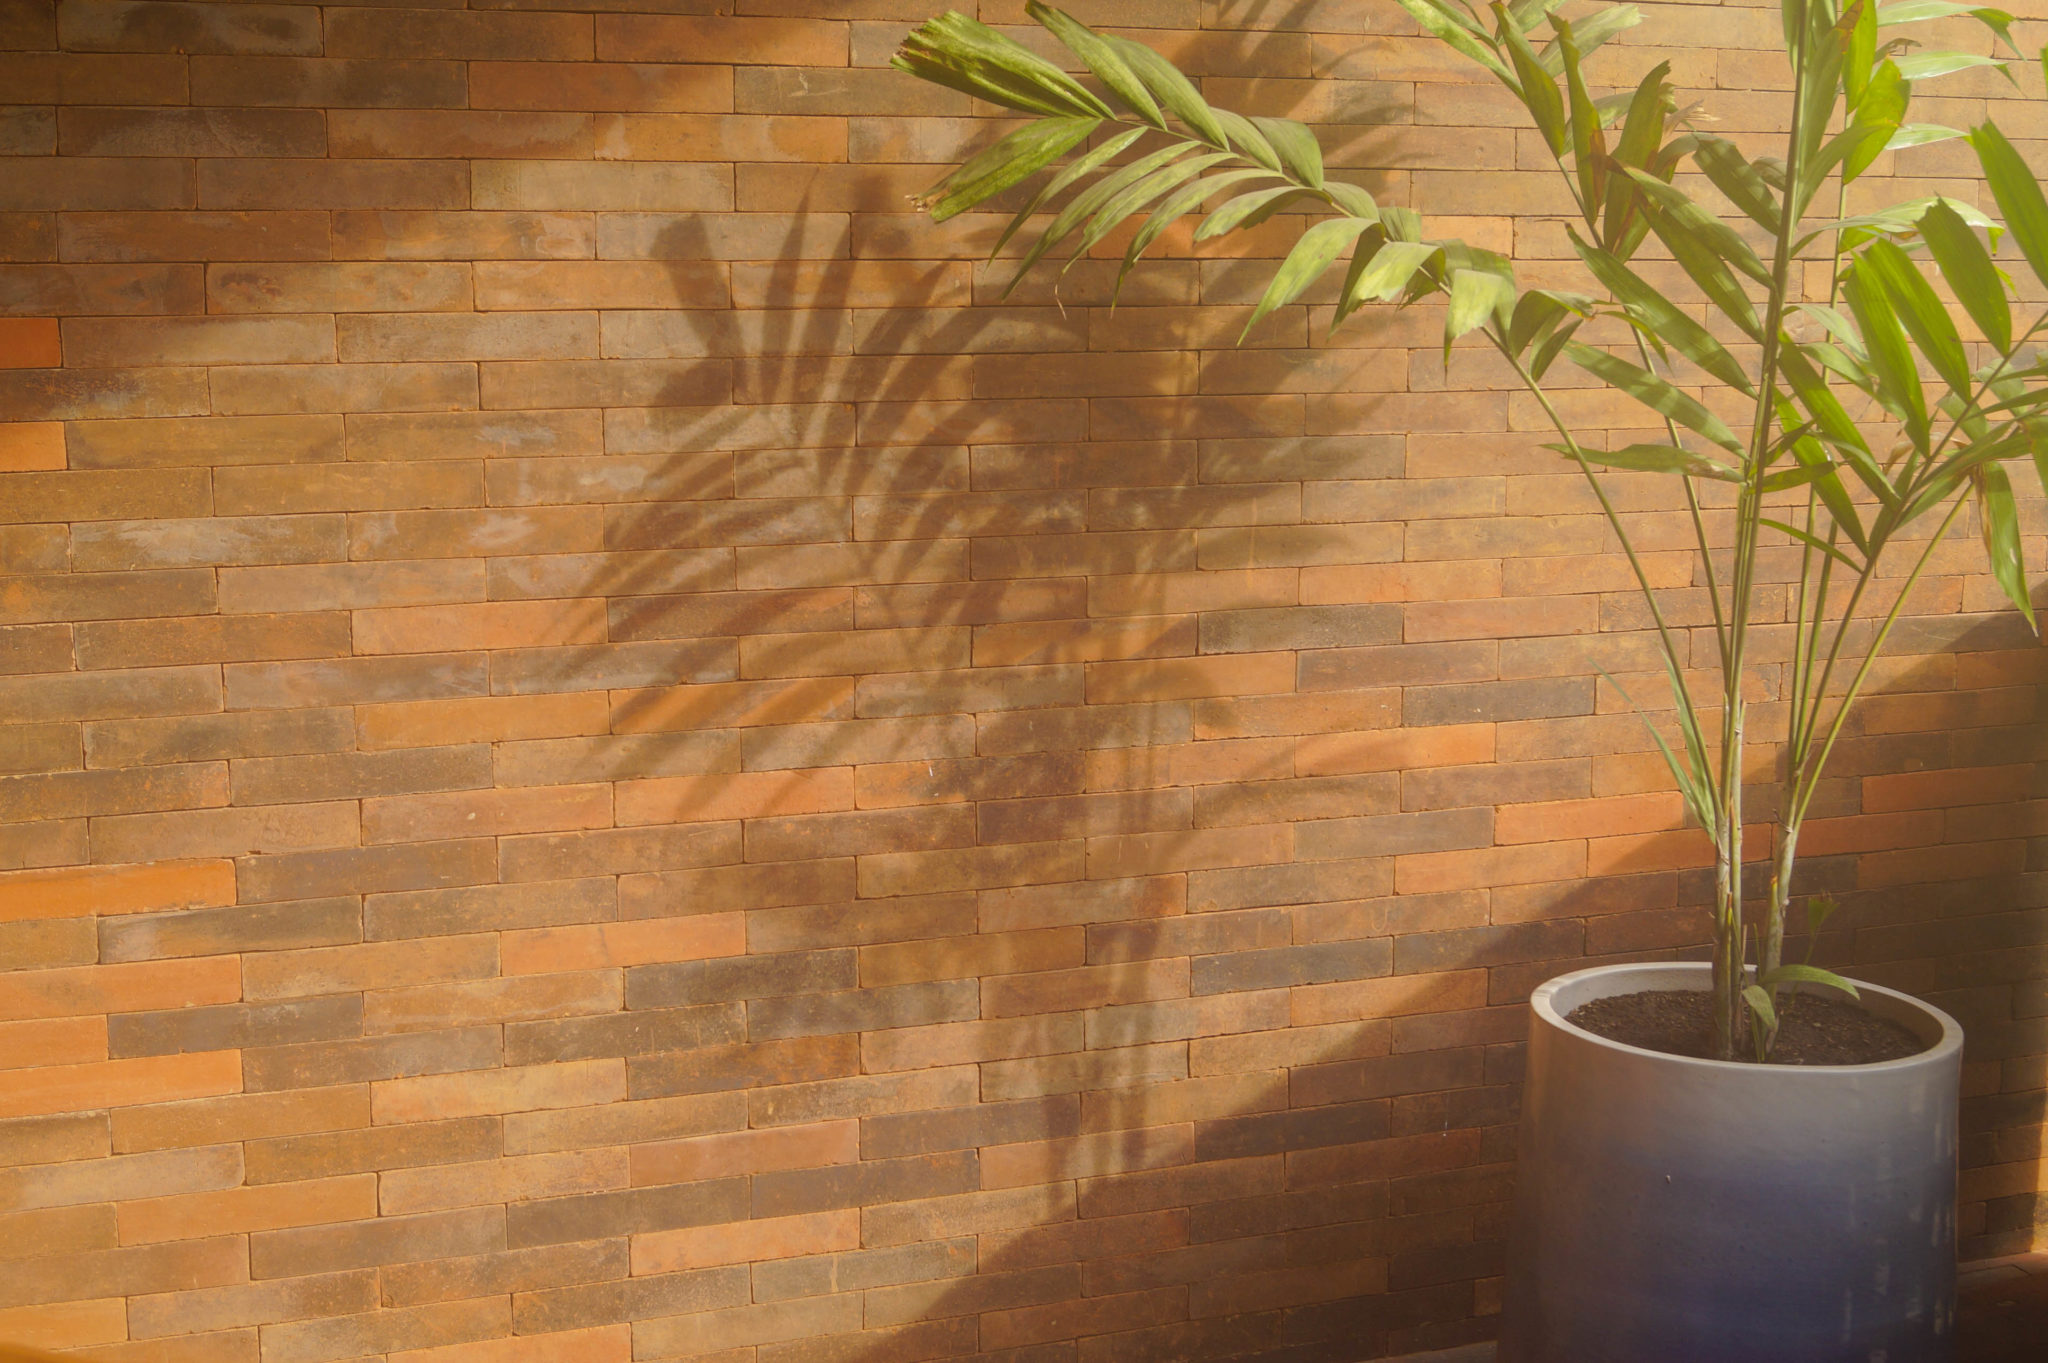 Katamama Hotel Bali: Bricks and palm trees, a perfect match.